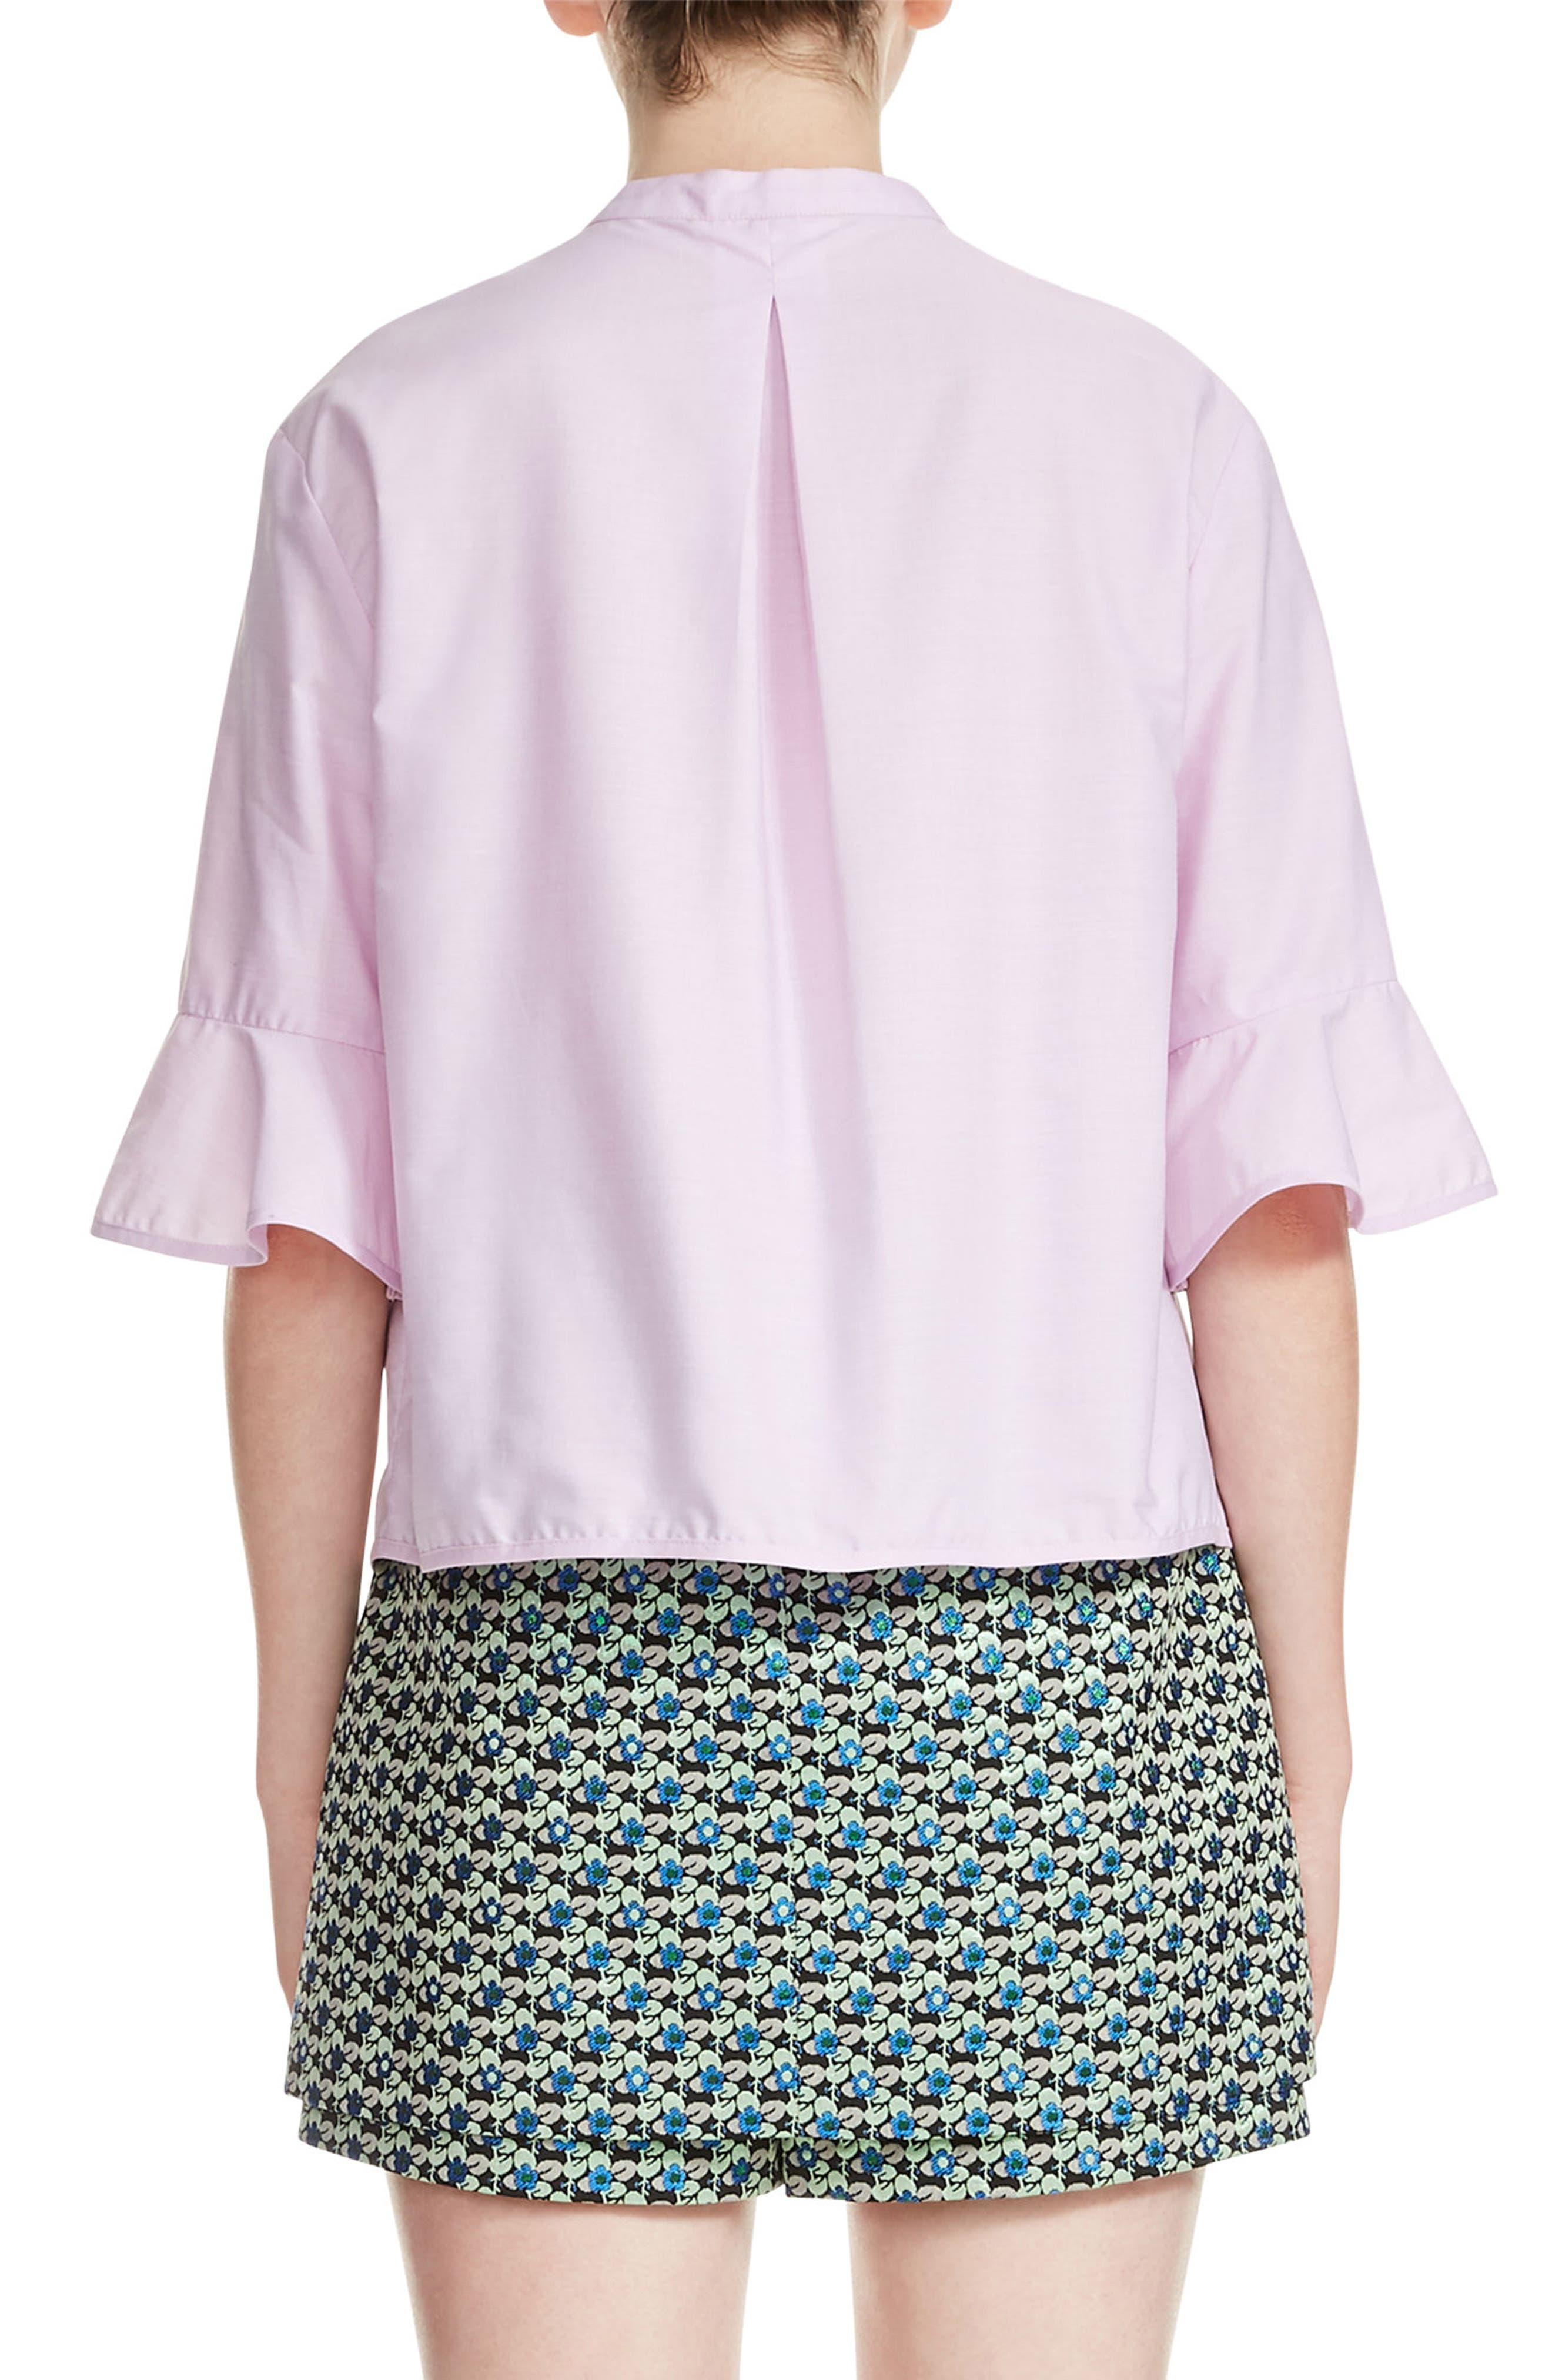 Charly Cotton Ruffle Sleeve Top,                             Alternate thumbnail 2, color,                             Rose